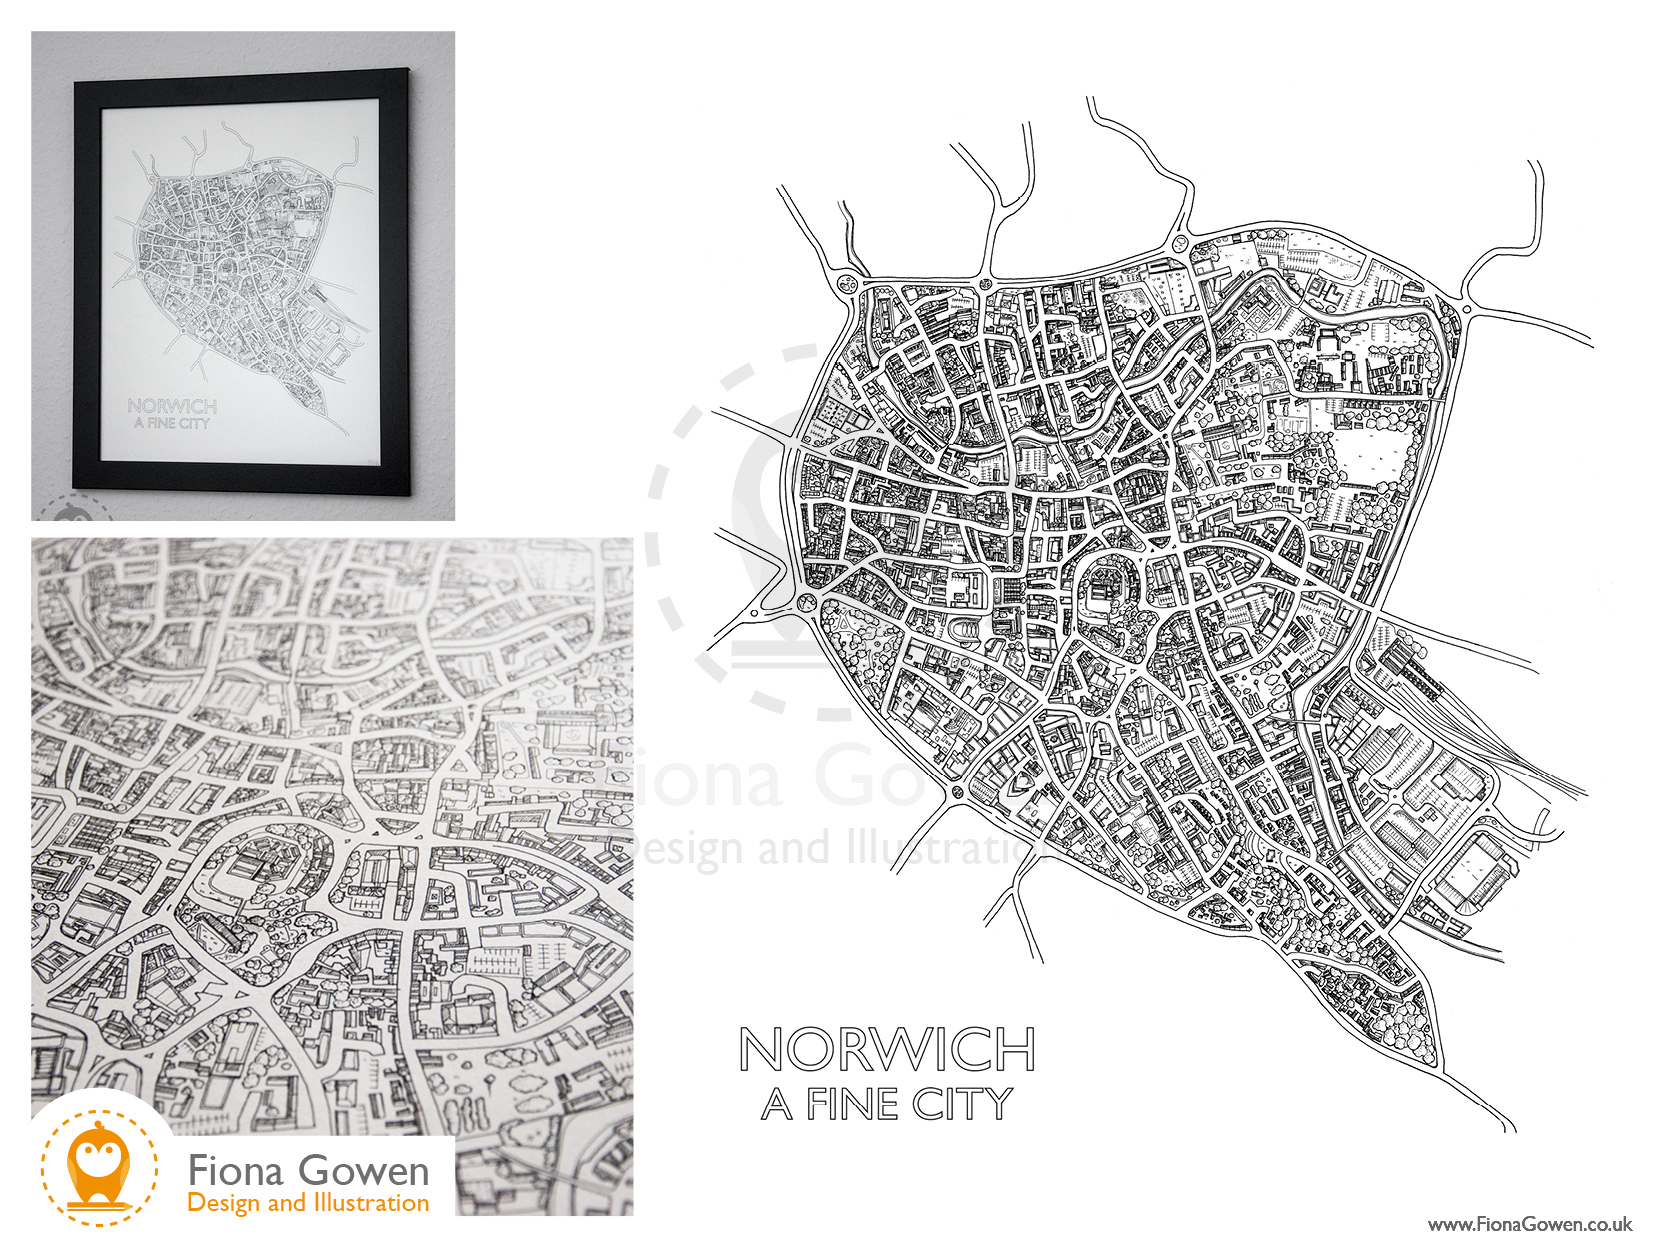 Illustrated map of Norwich, Norfolk by Norfolk map illustrator Fiona Gowen